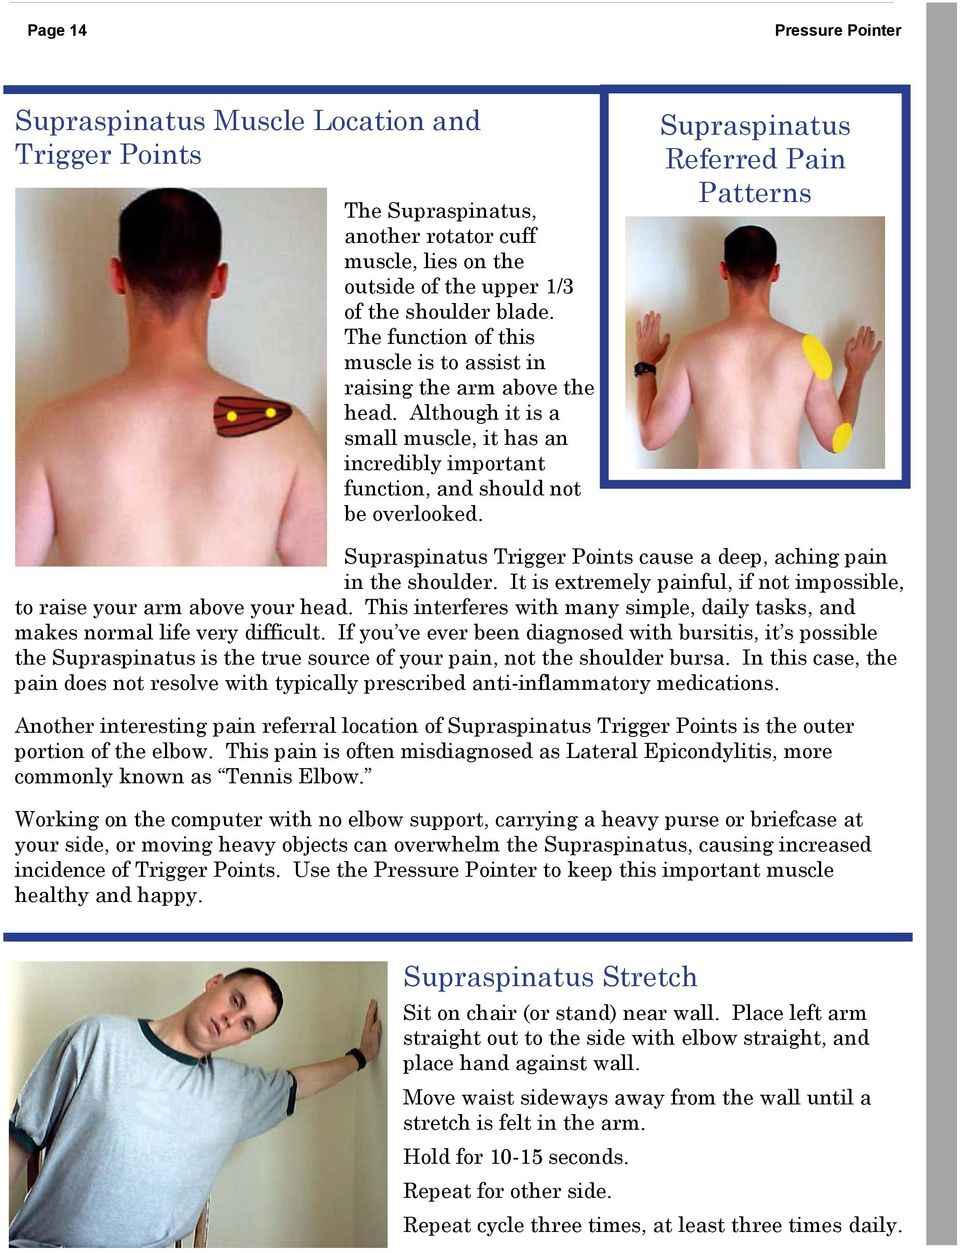 Supraspinatus Referred Pain Patterns Supraspinatus Trigger Points cause a deep, aching pain in the shoulder. It is extremely painful, if not impossible, to raise your arm above your head.